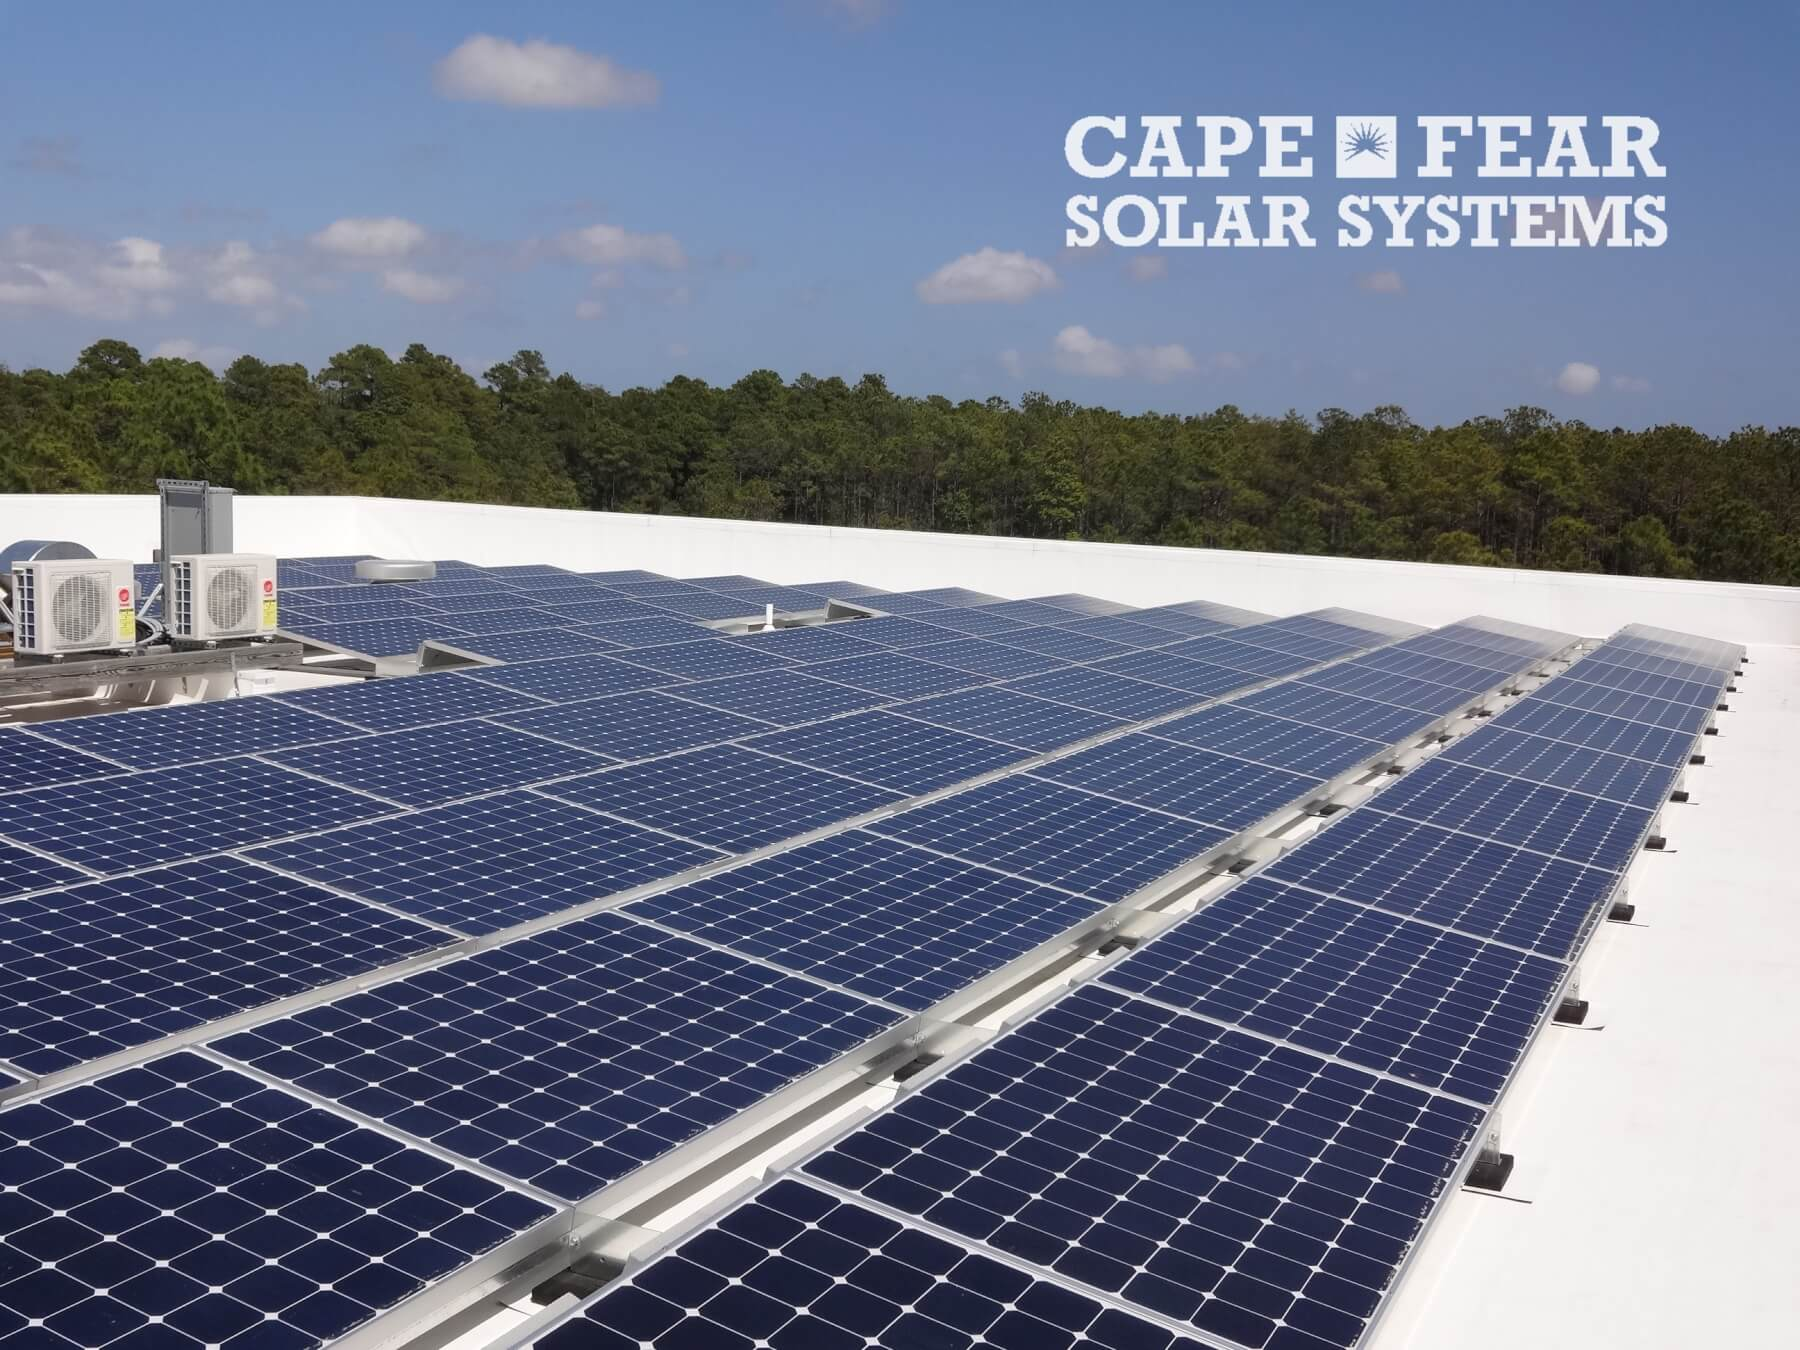 Cape Fear Solar Systems Inaugurates 64 3 kW Solar Array in